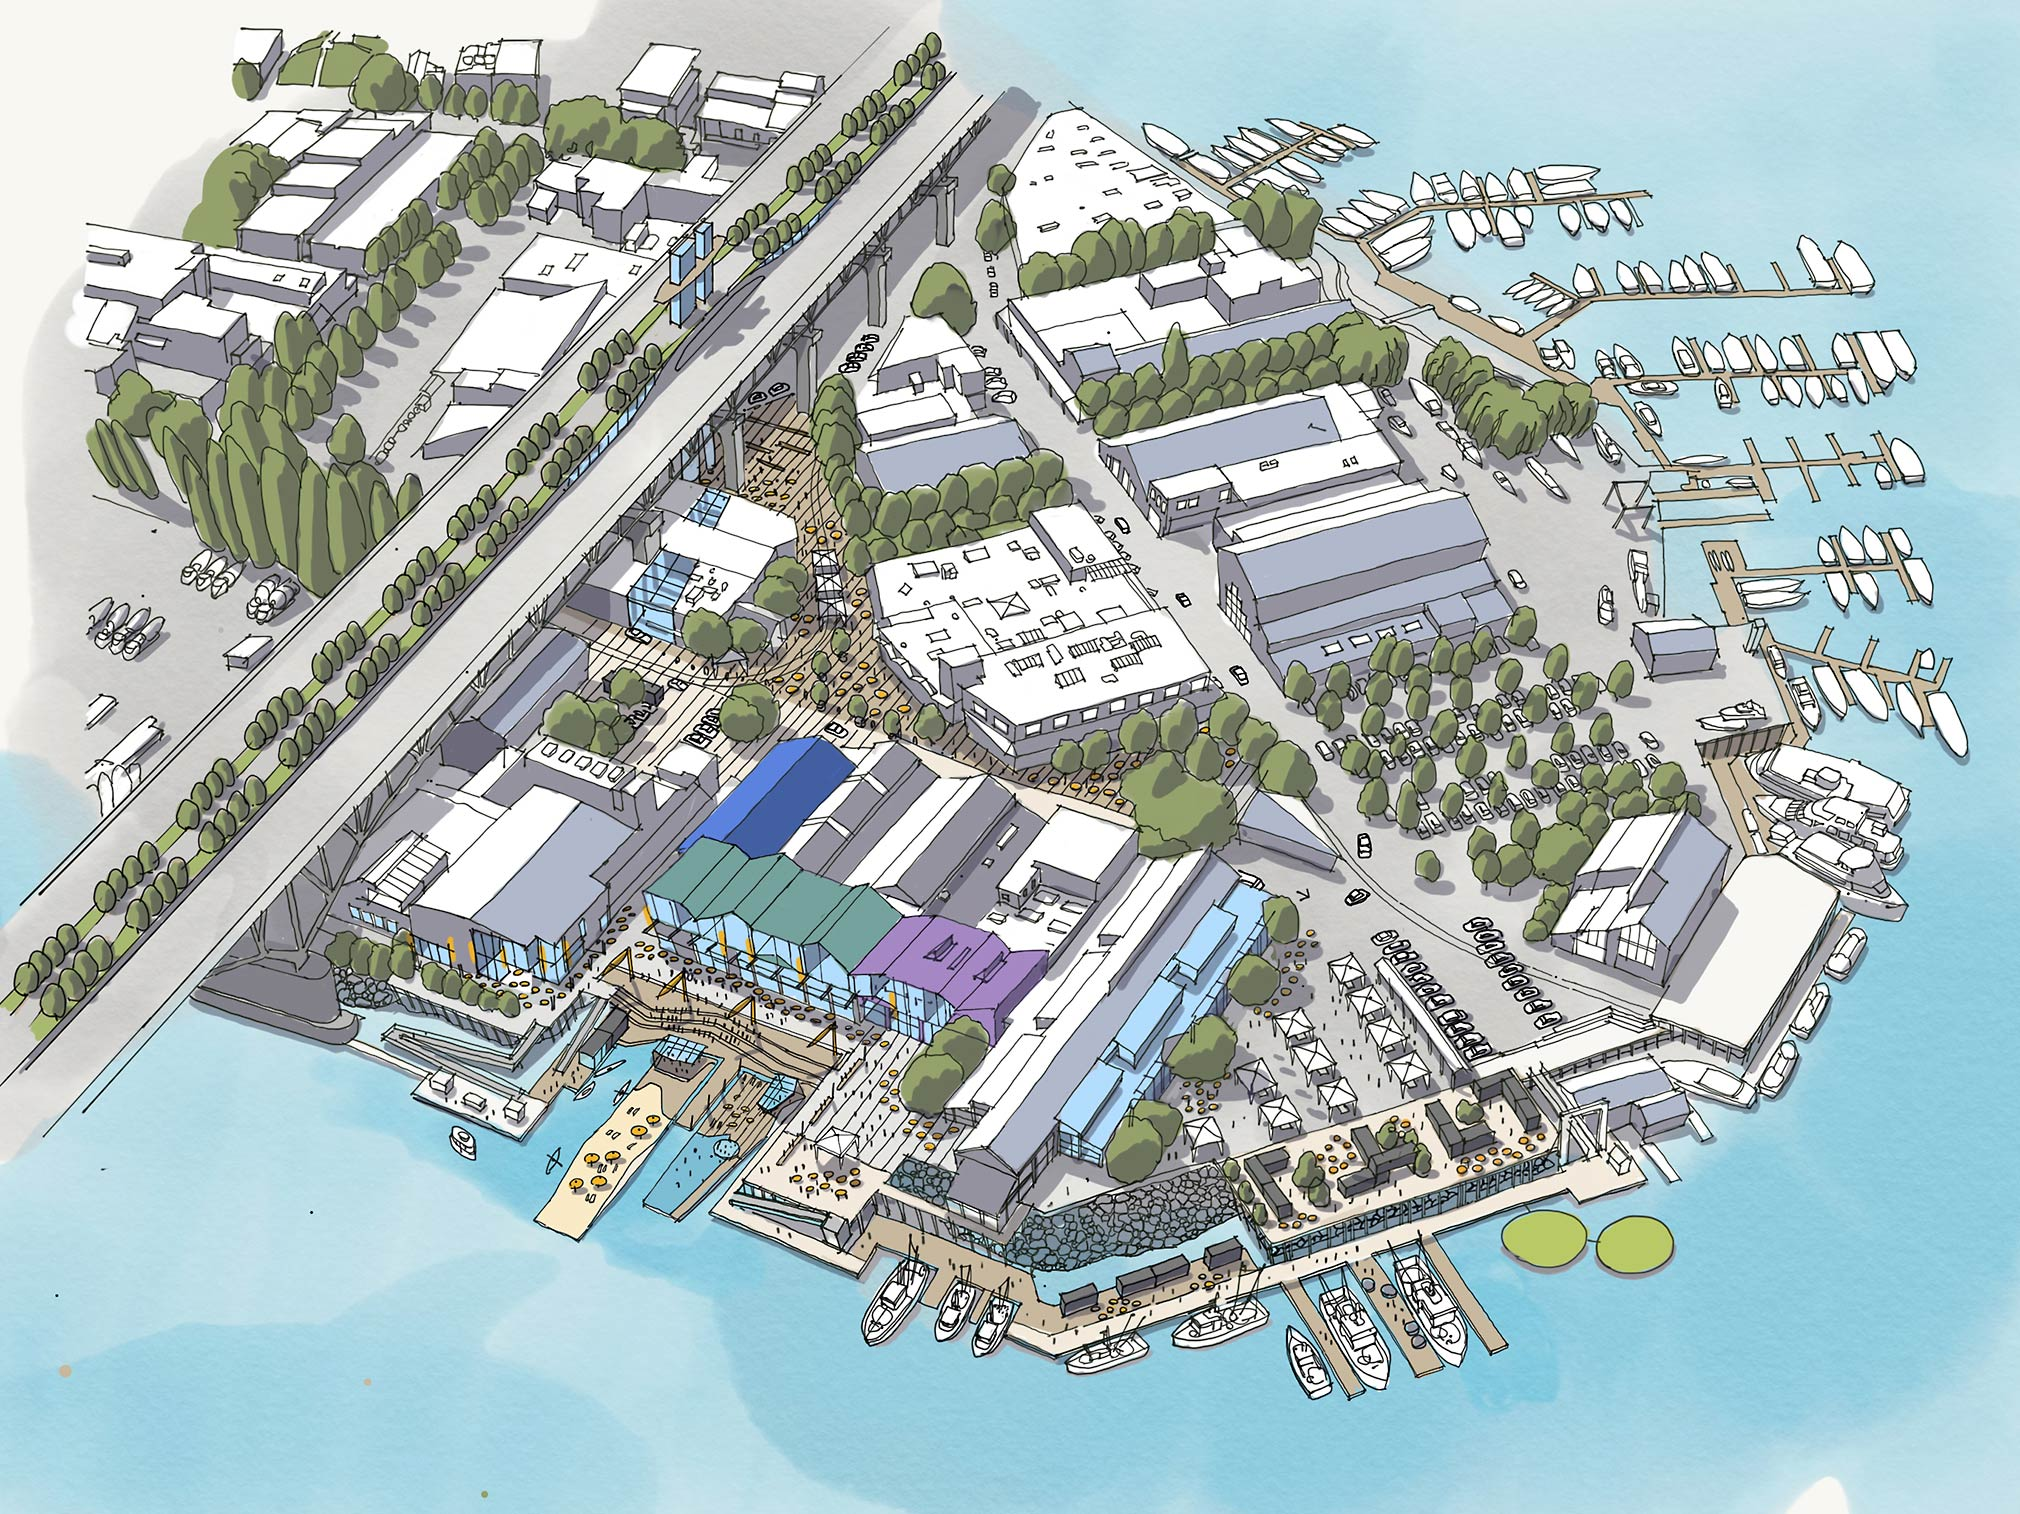 Concept sketch showing long-term vision of expanded Public Market